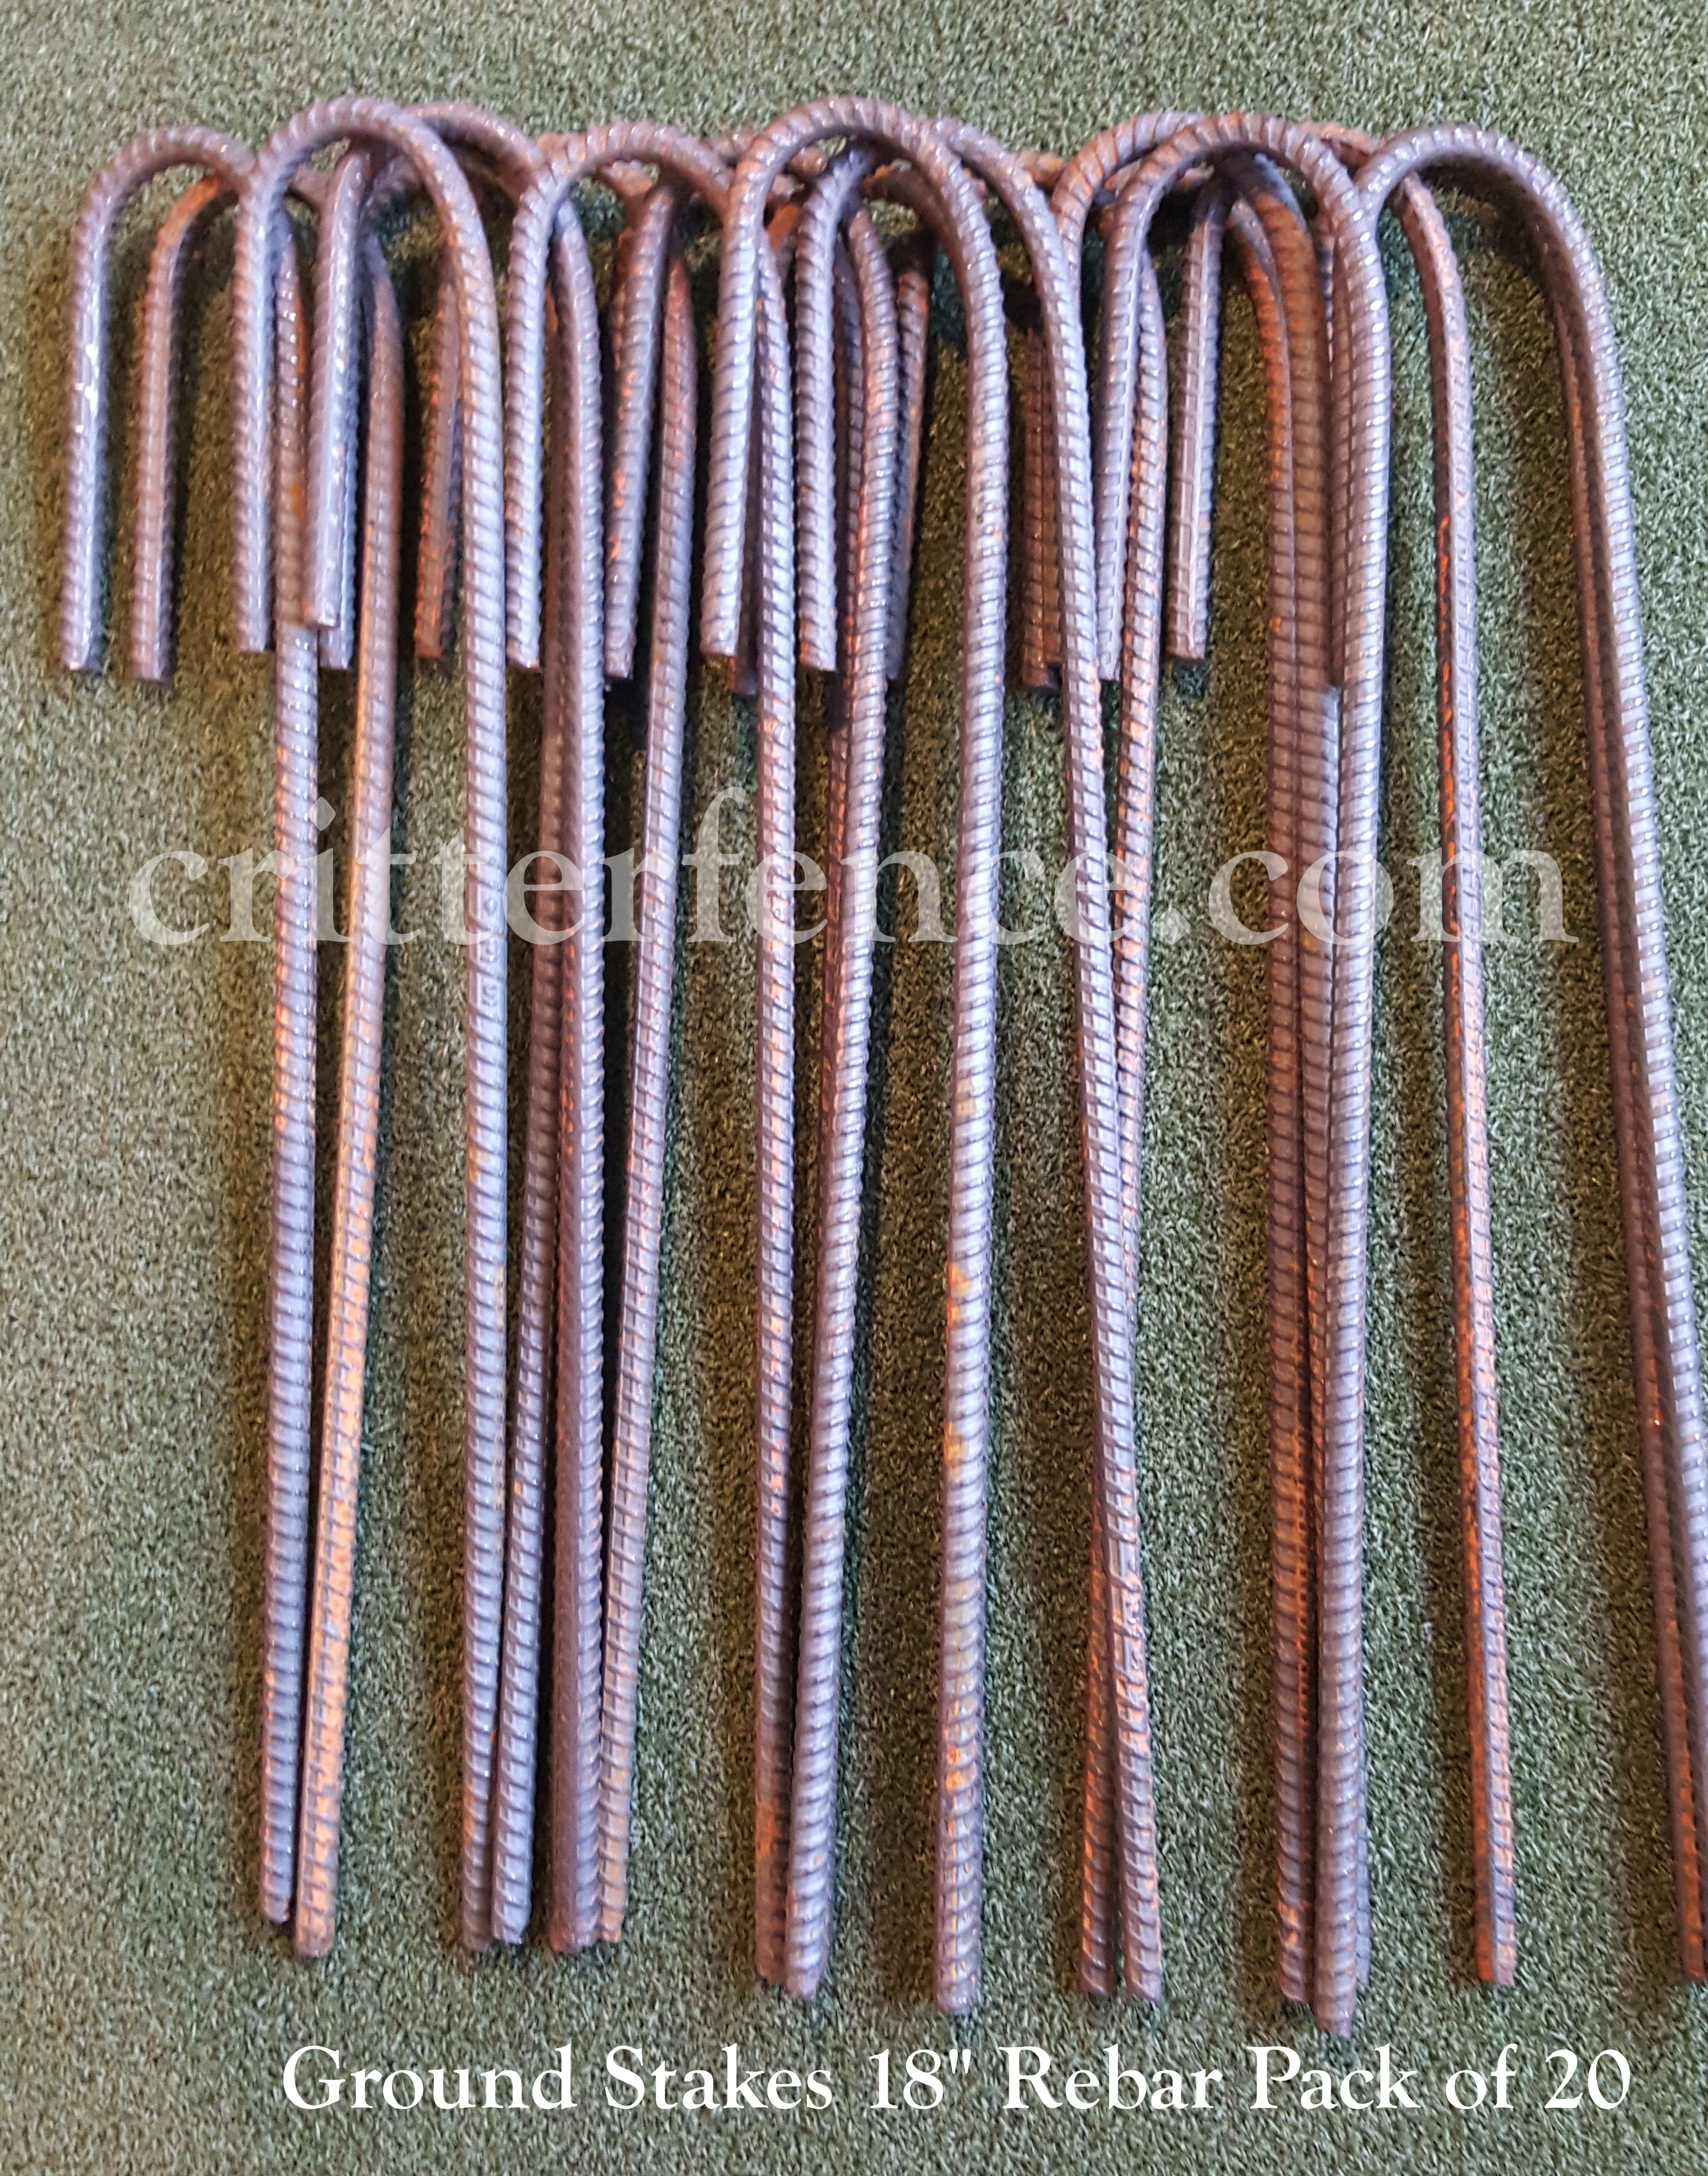 Heavy Duty Rebar : Ground stakes quot rebar pack bundle